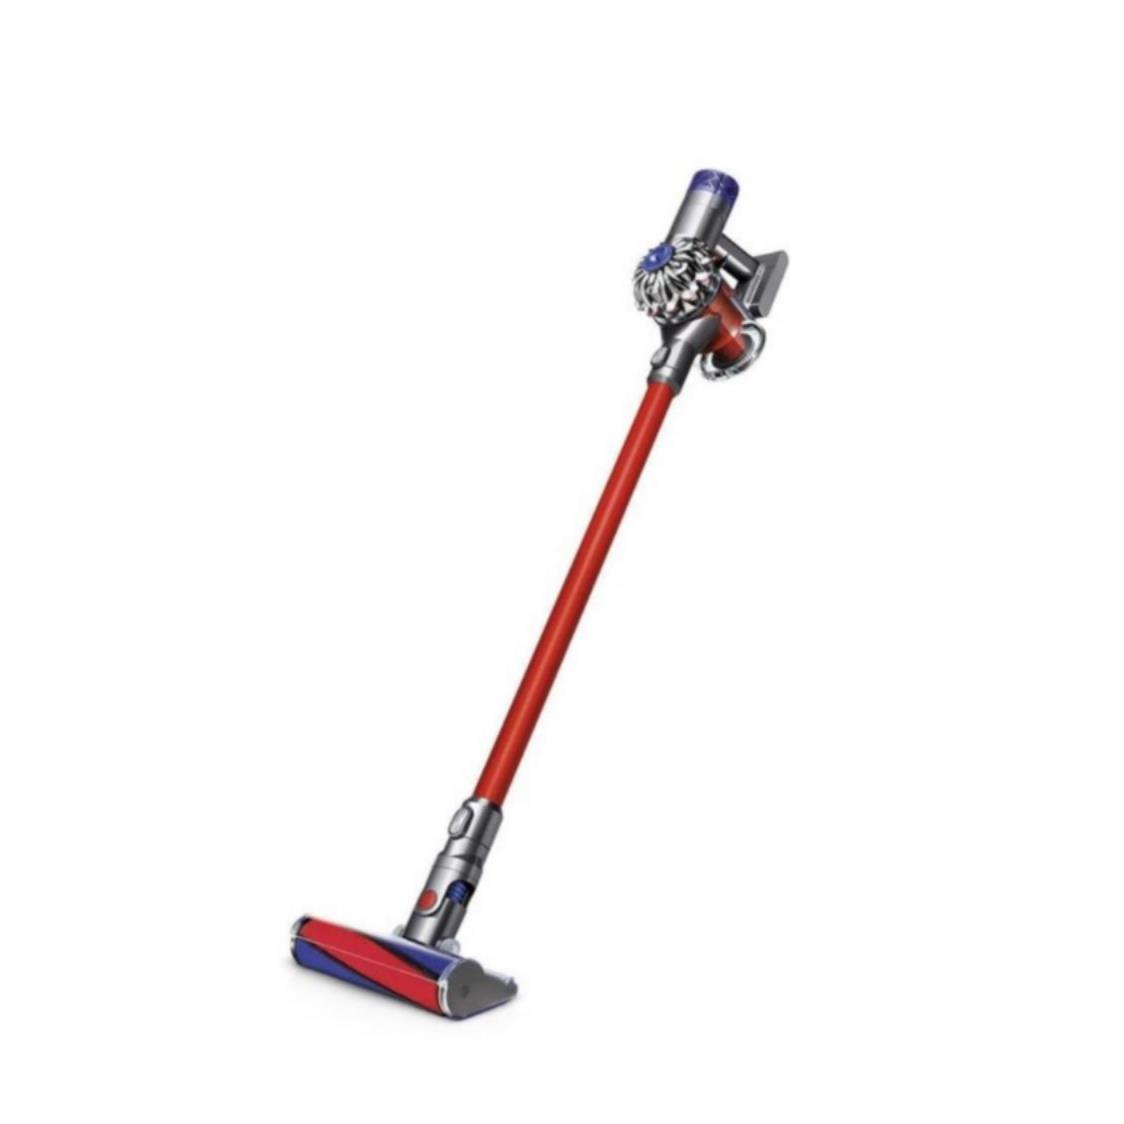 Dyson V7 Fluffy Cord-Free Vacuum Cleaner UP 799